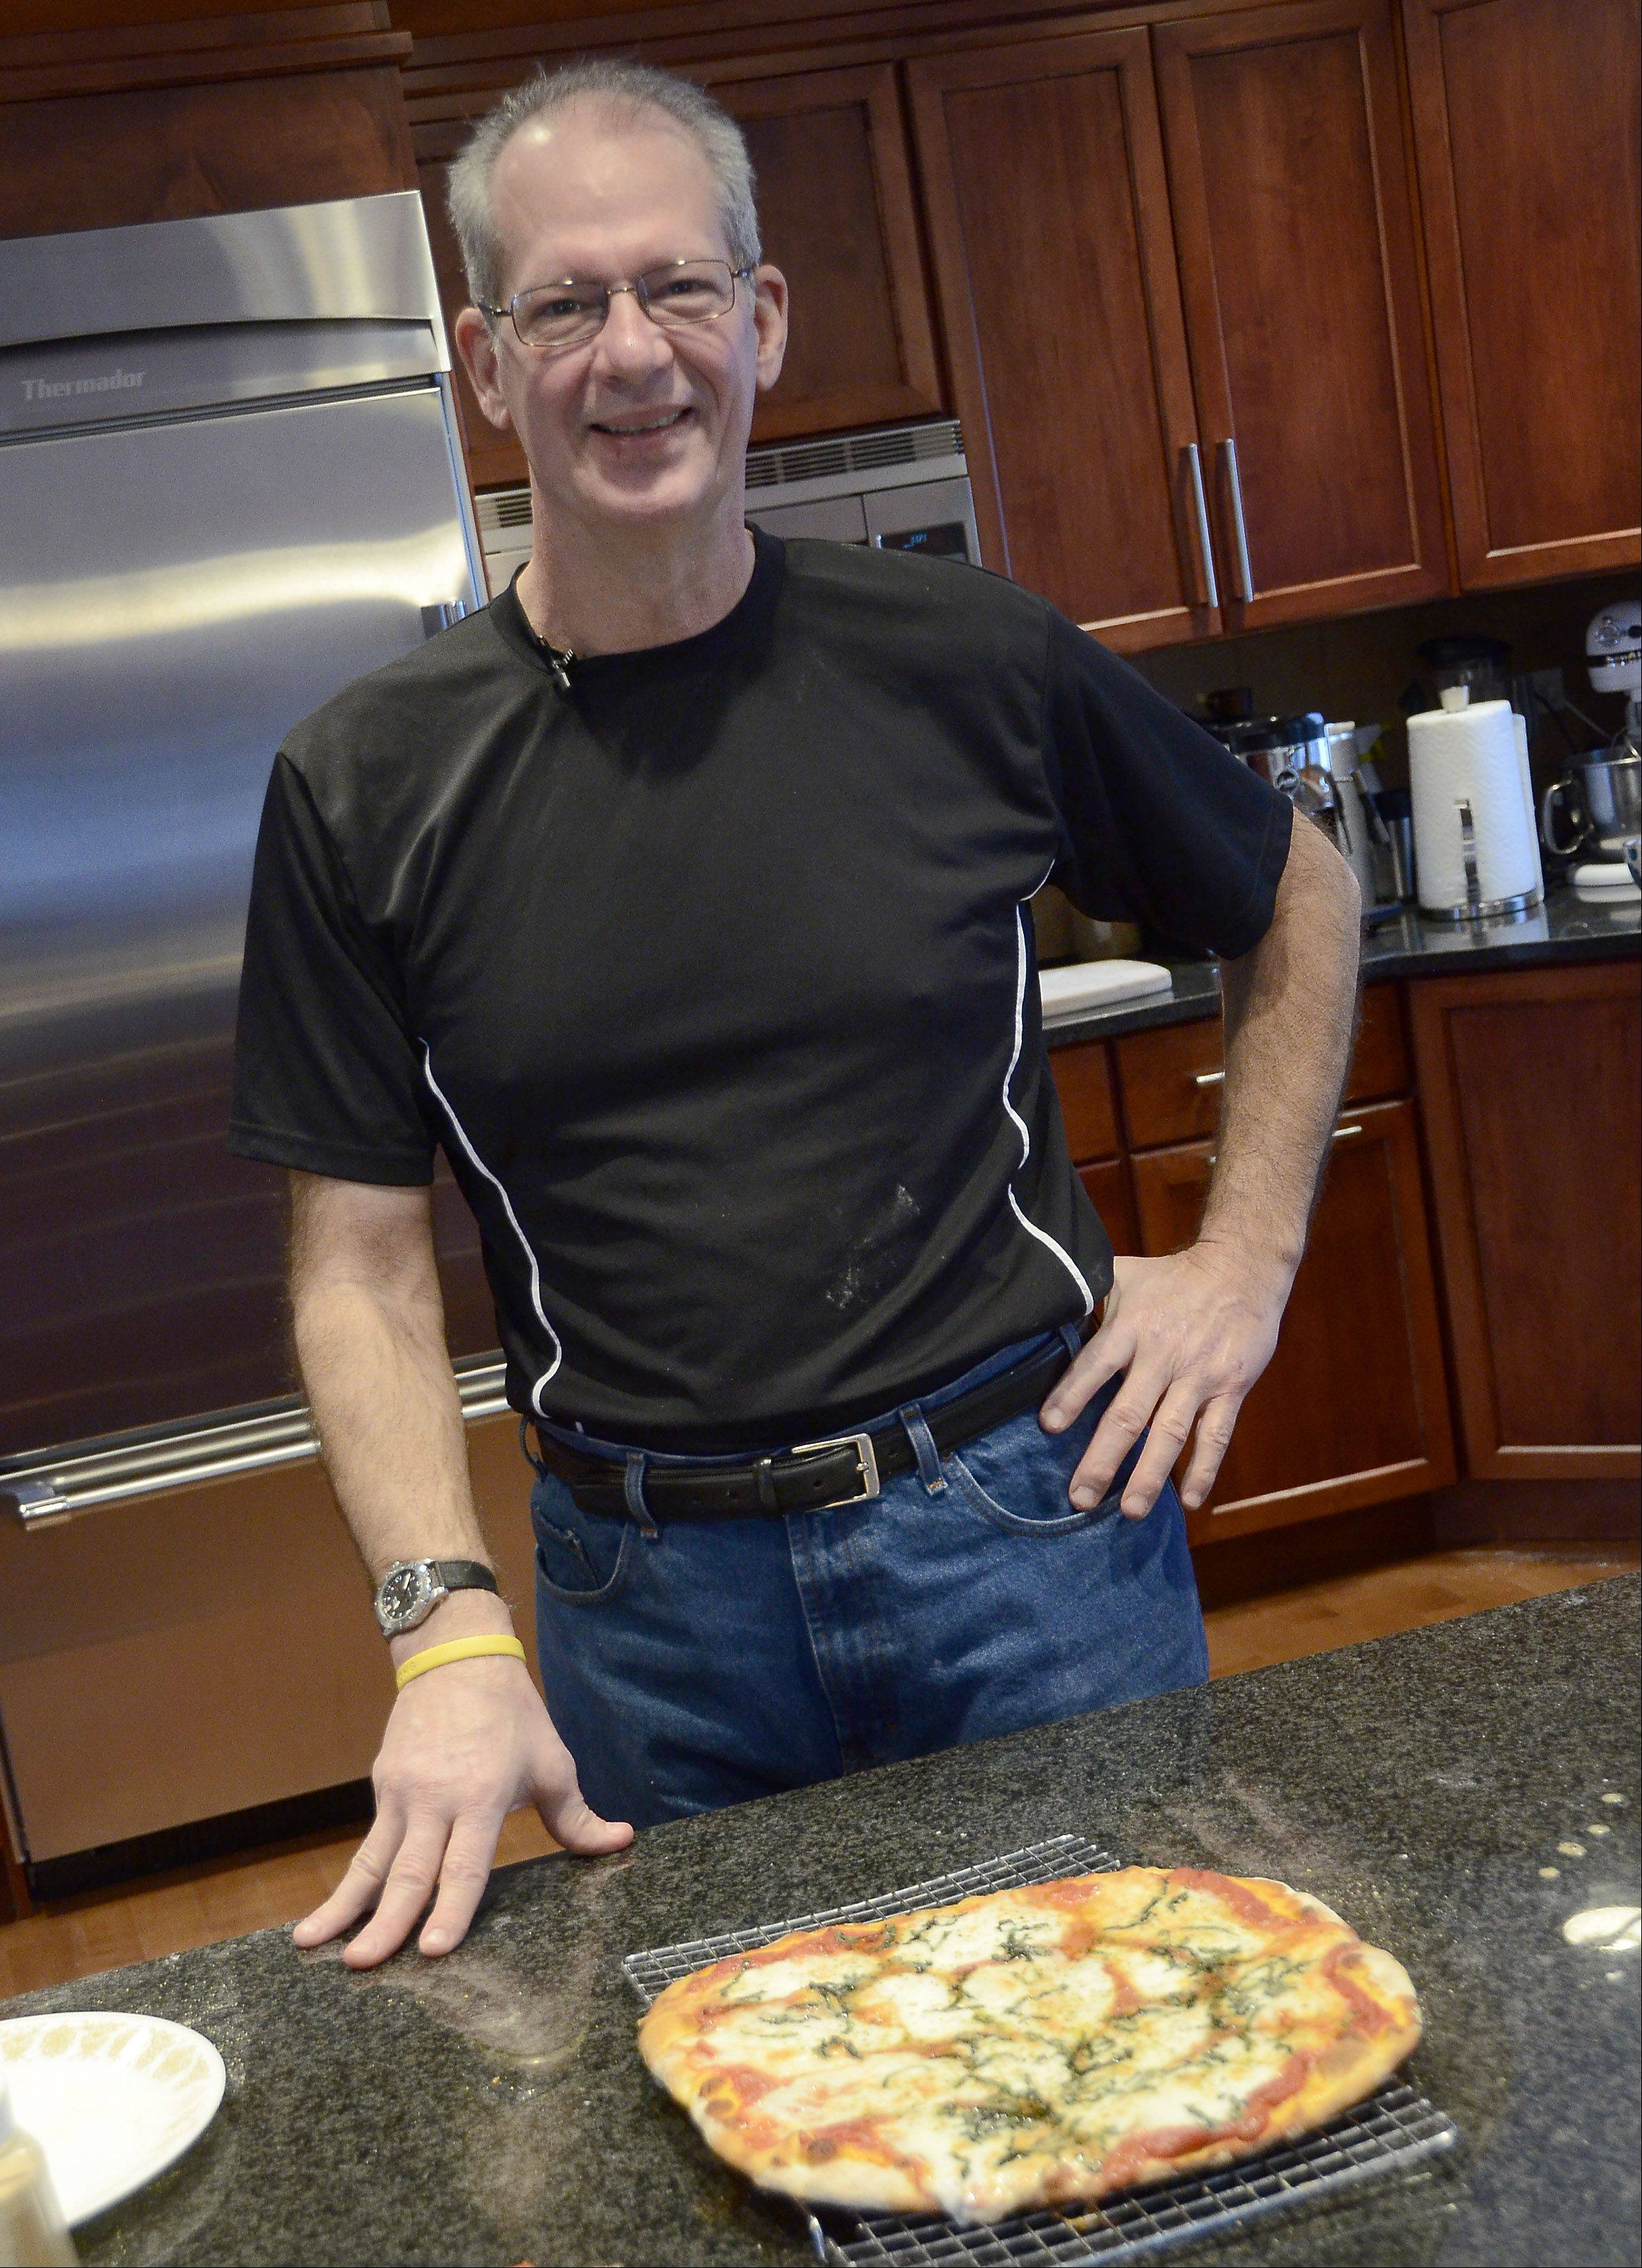 Nick Brenkus sources Italian flour and cheese for the Pizza Margherita he makes in his West Dundee home.